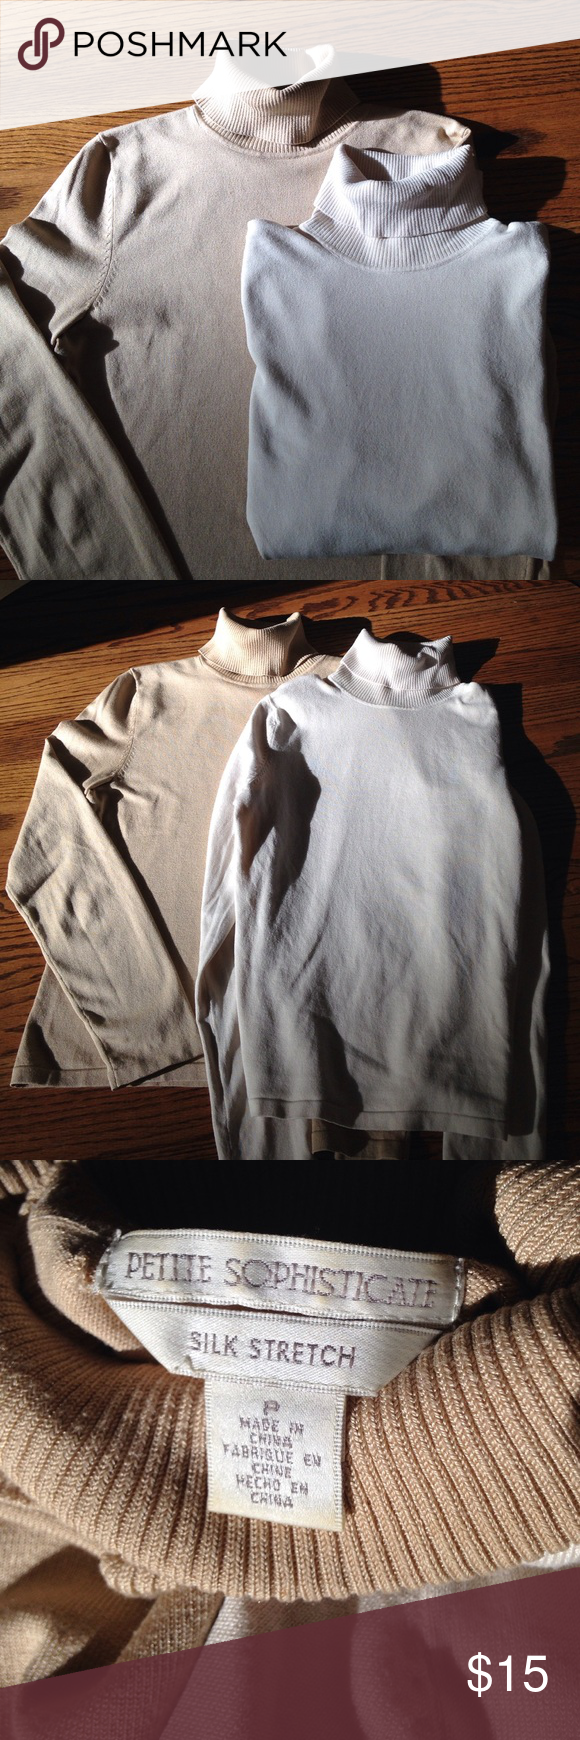 """2 beautiful silk sweaters in beige and ivory. Both sweaters are a 76/20/4 Silk/nylon/spandex blend. 21"""" long 16 1/2"""" wide at bottom. They are in excellent condition.  Hand wash cold lay flat to dry.  Offers welcome. Petite Sophisticate Sweaters Cowl & Turtlenecks"""